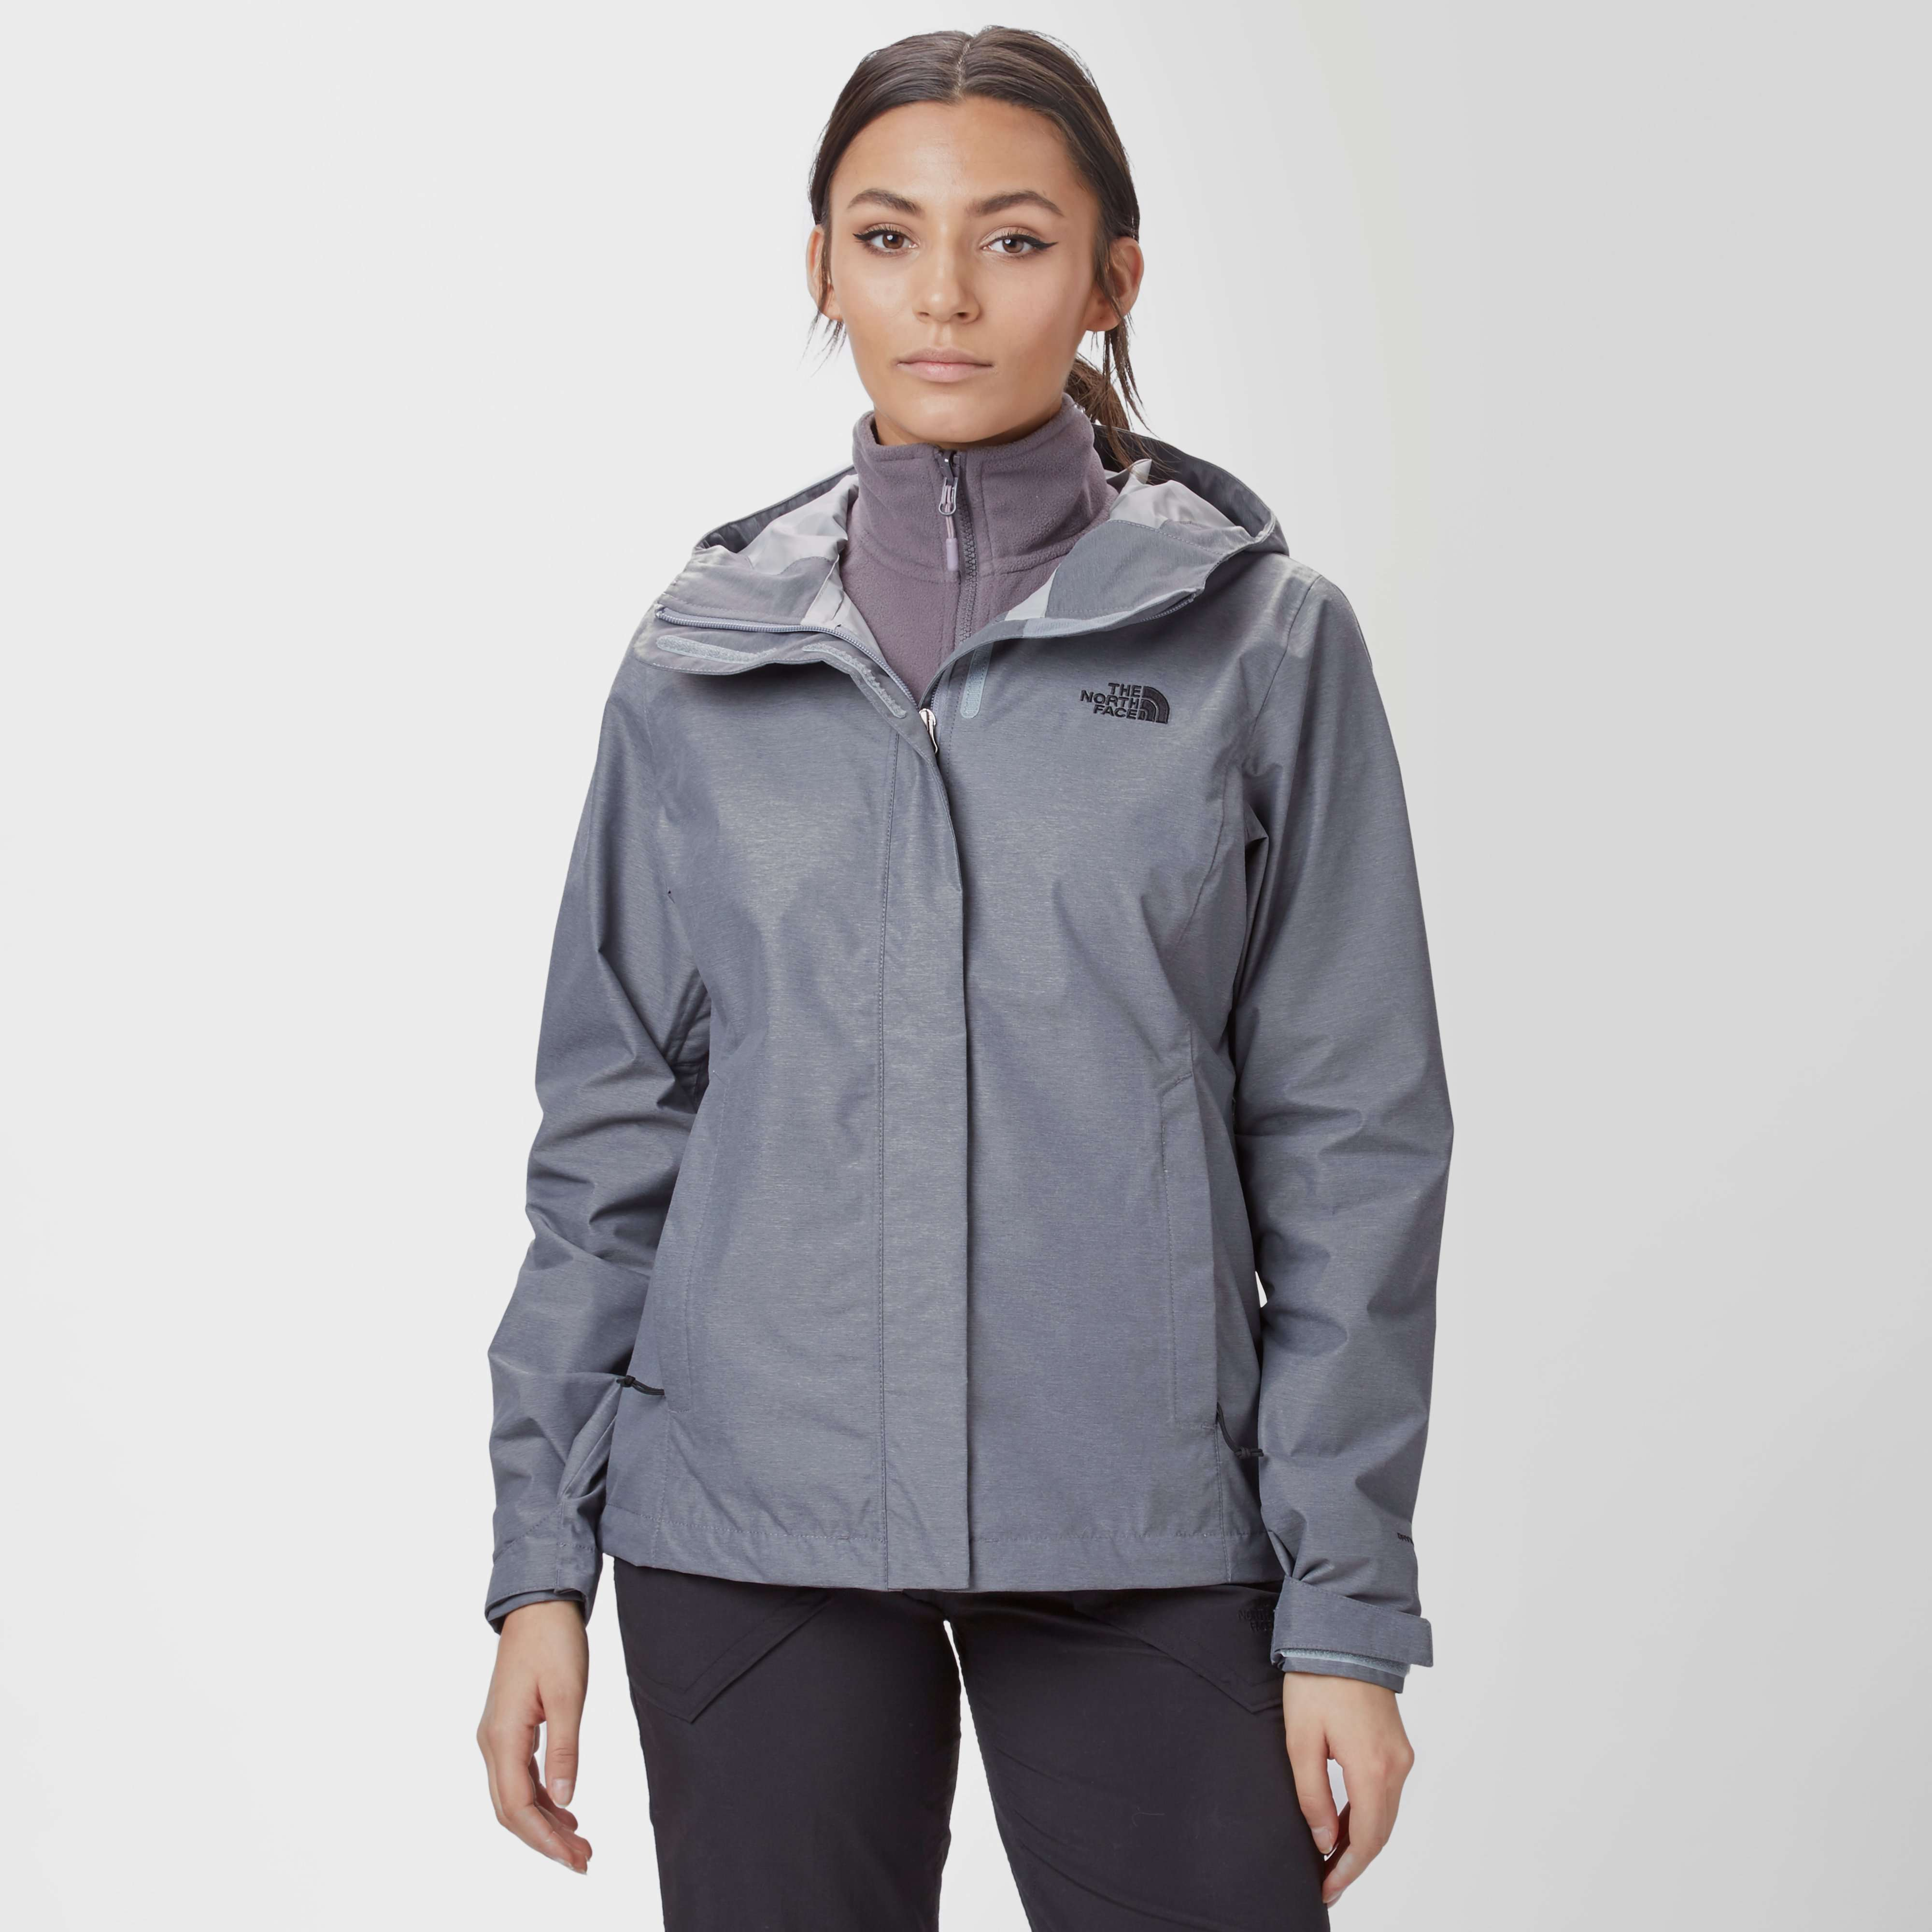 THE NORTH FACE Women's Venture 2 DryVent™ Waterproof Jacket